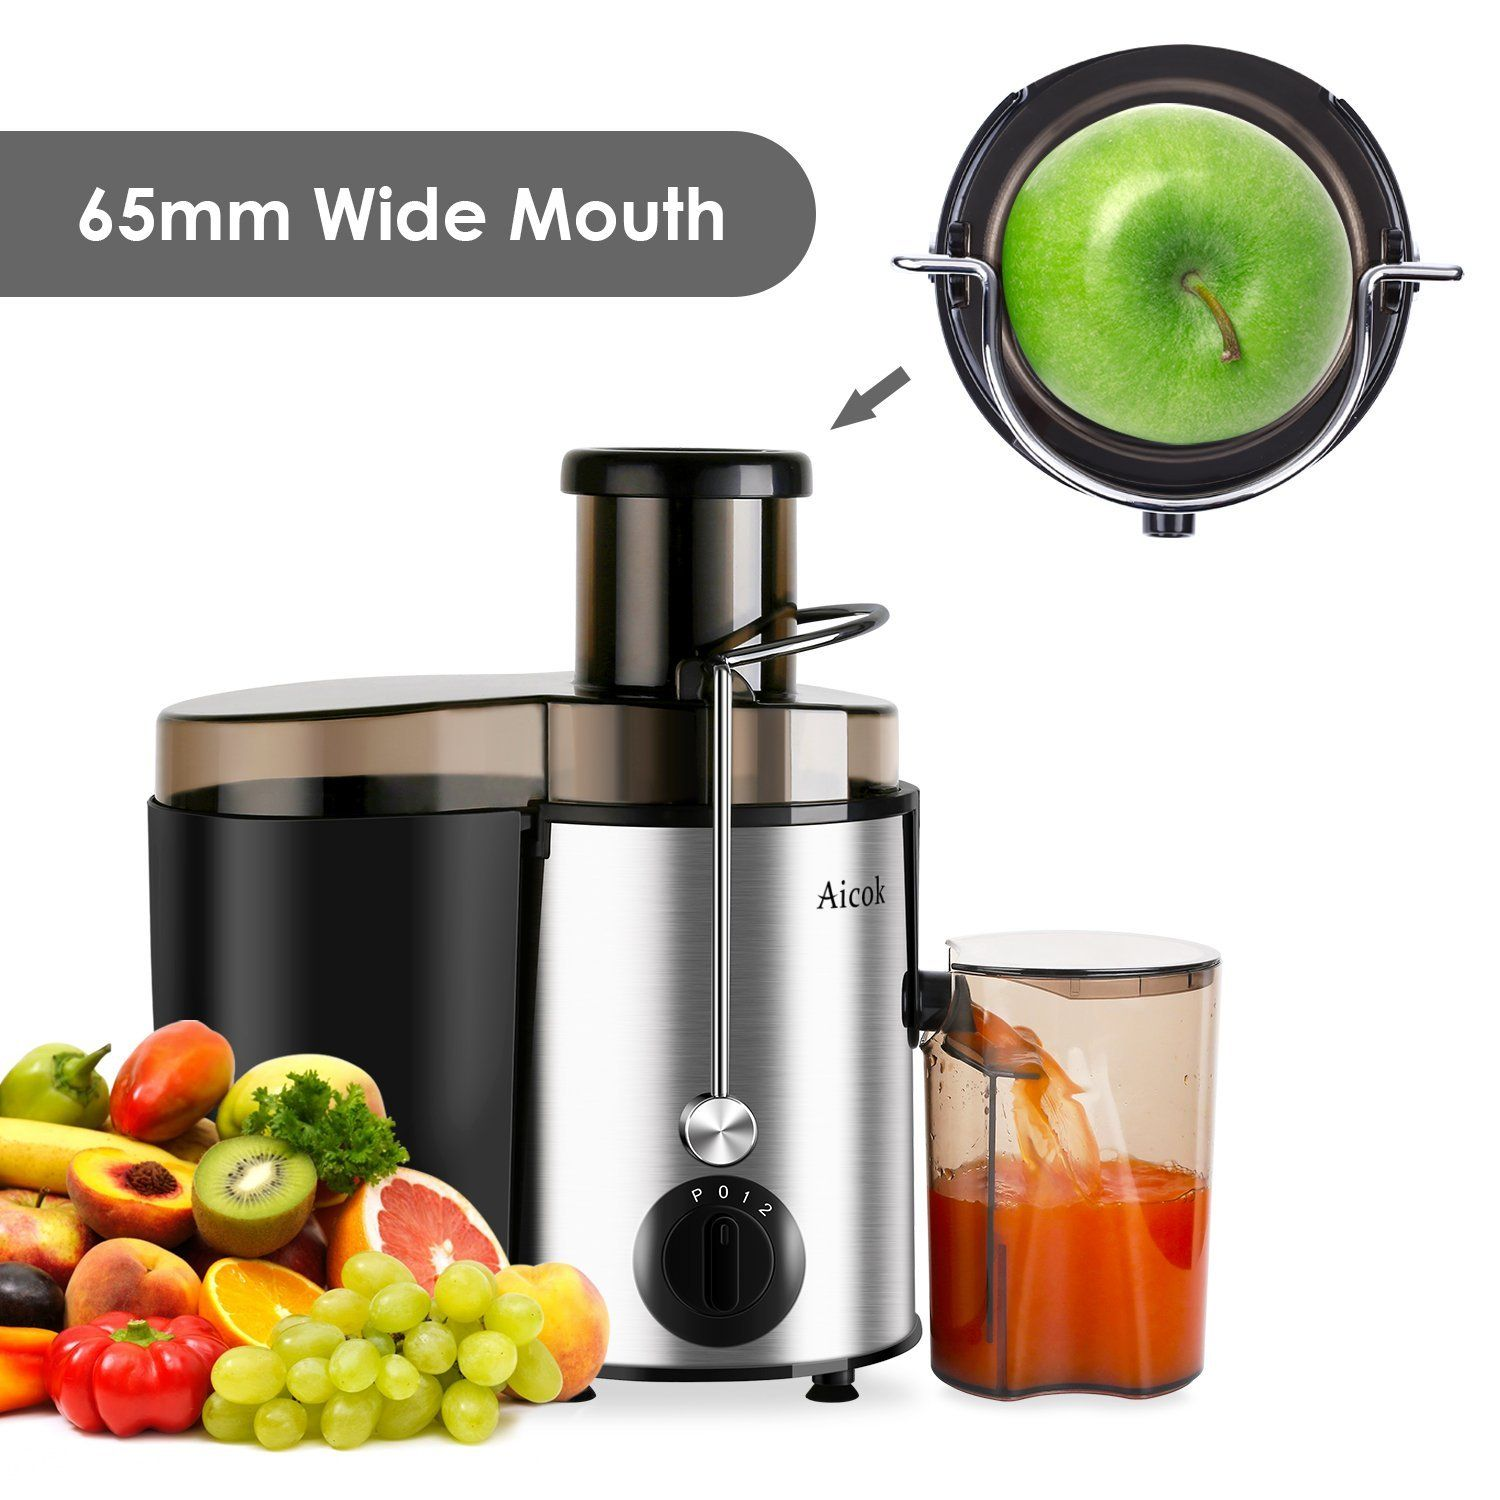 : Aicok Juicer Juice Extractor High Speed for